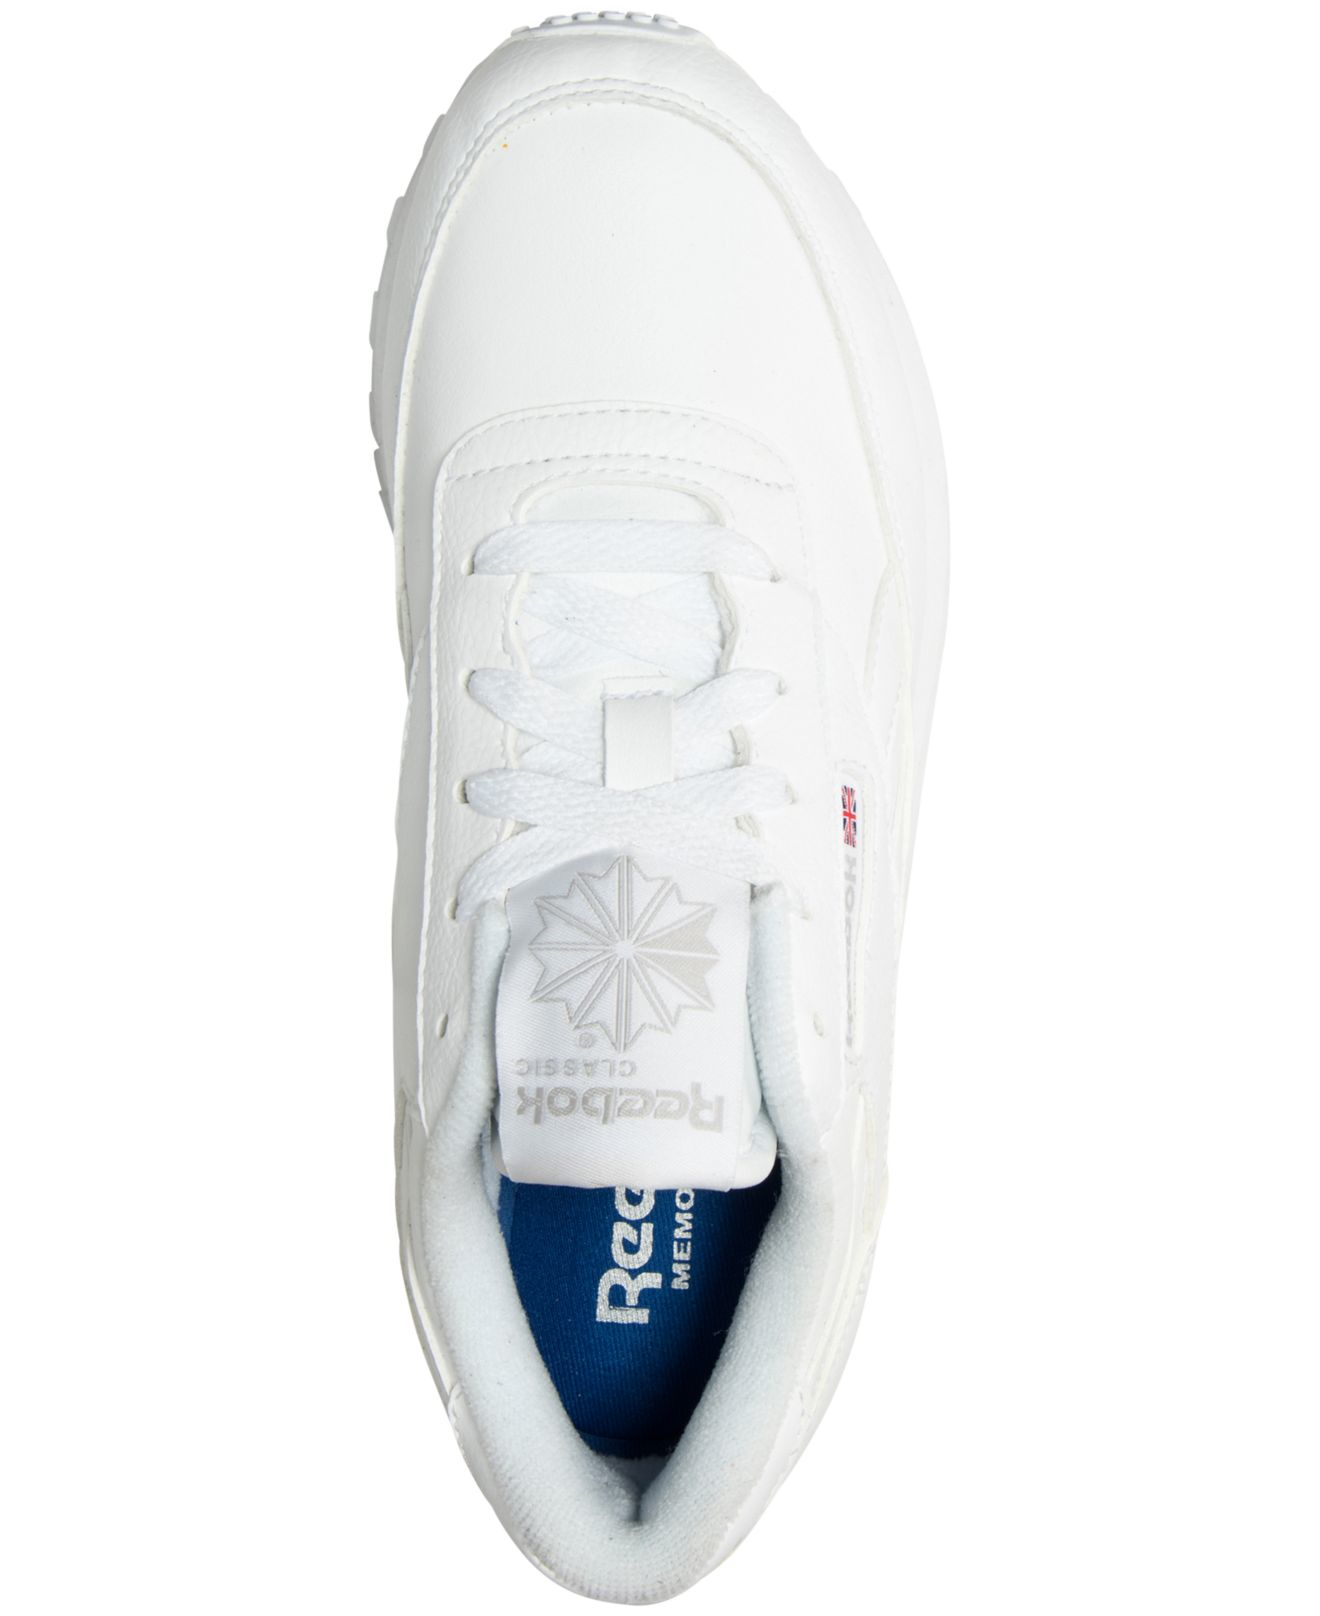 Lyst - Reebok Women s Classic Renaissance Casual Sneakers From ... b3bc5798e